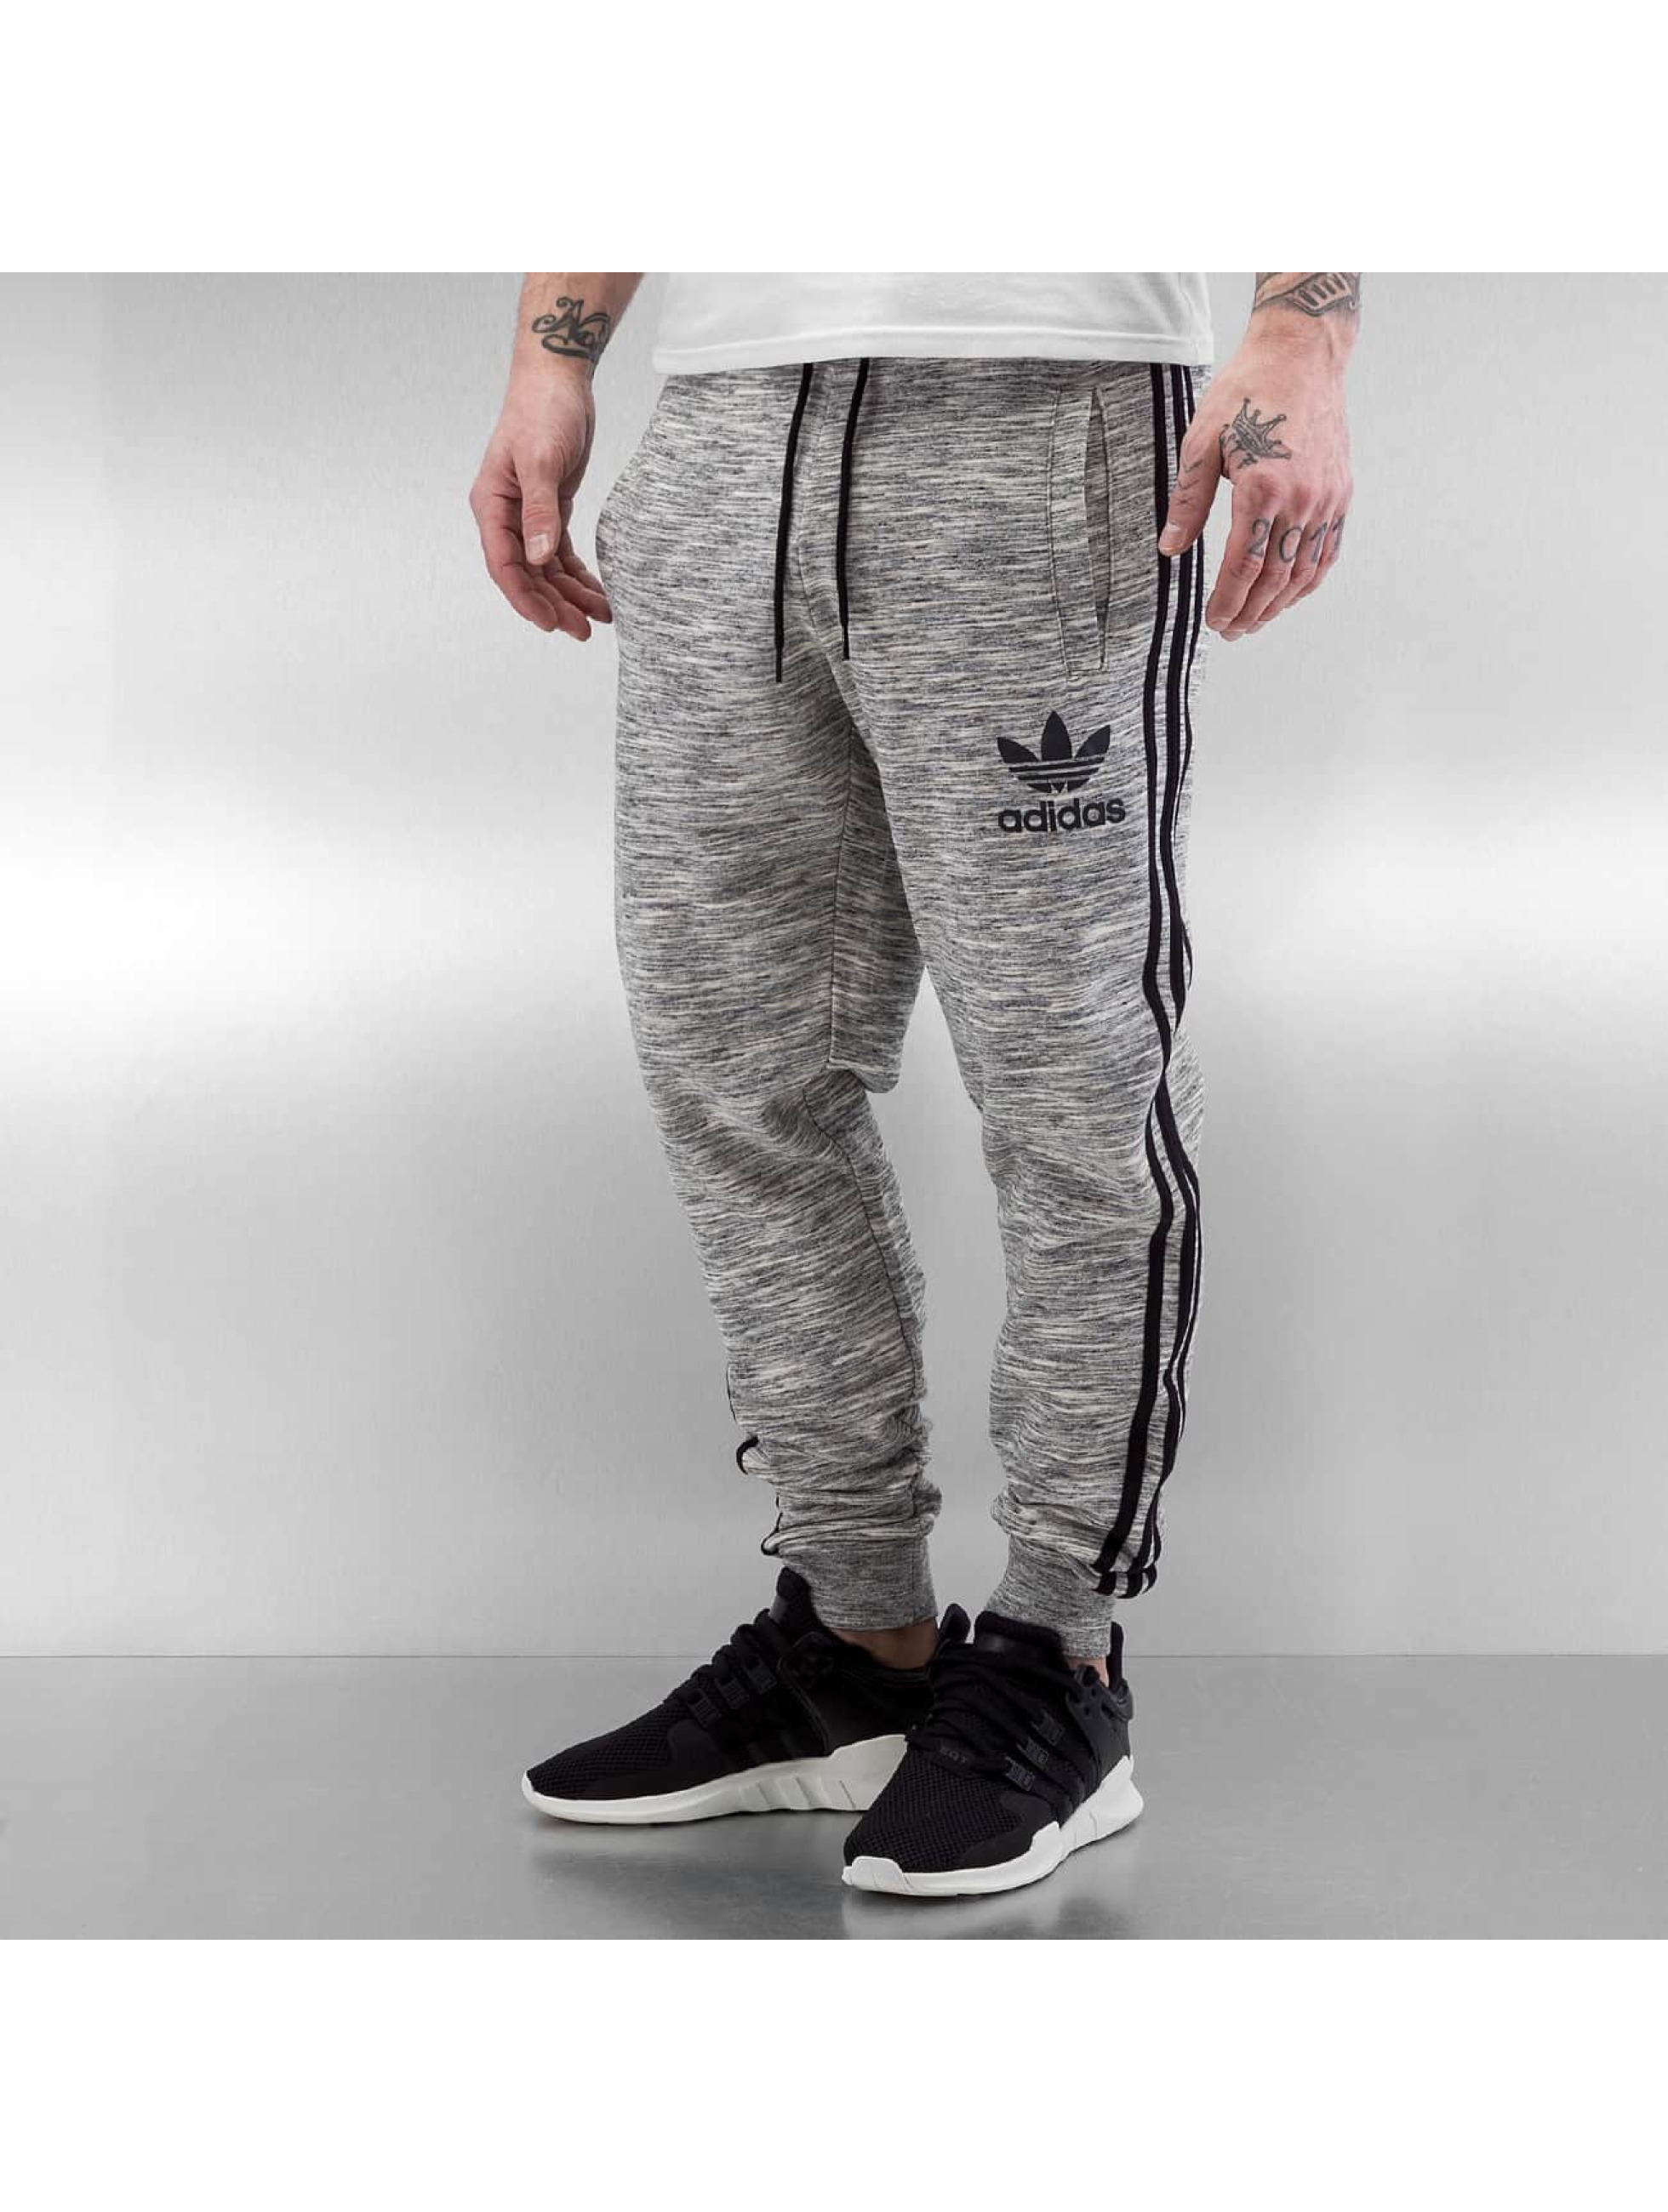 adidas Sweat Pant CLFN French Terry grey